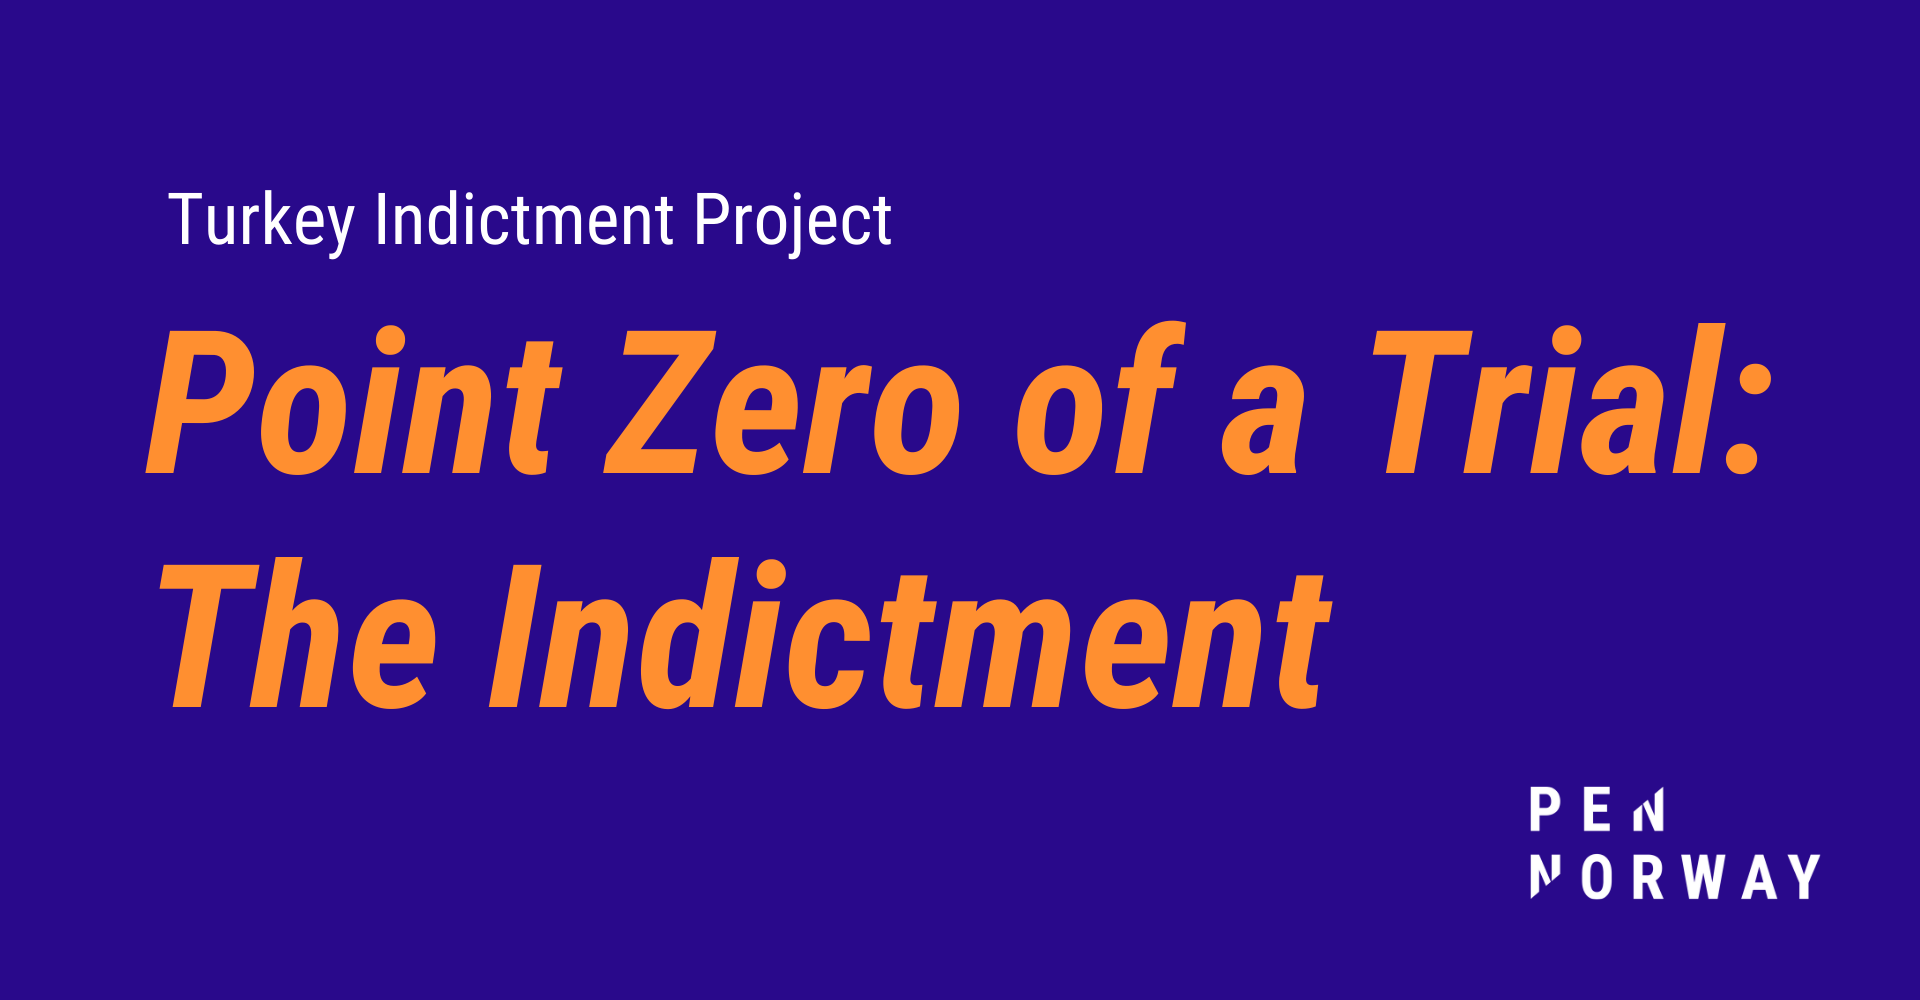 Point Zero of a Trial: The Indictment